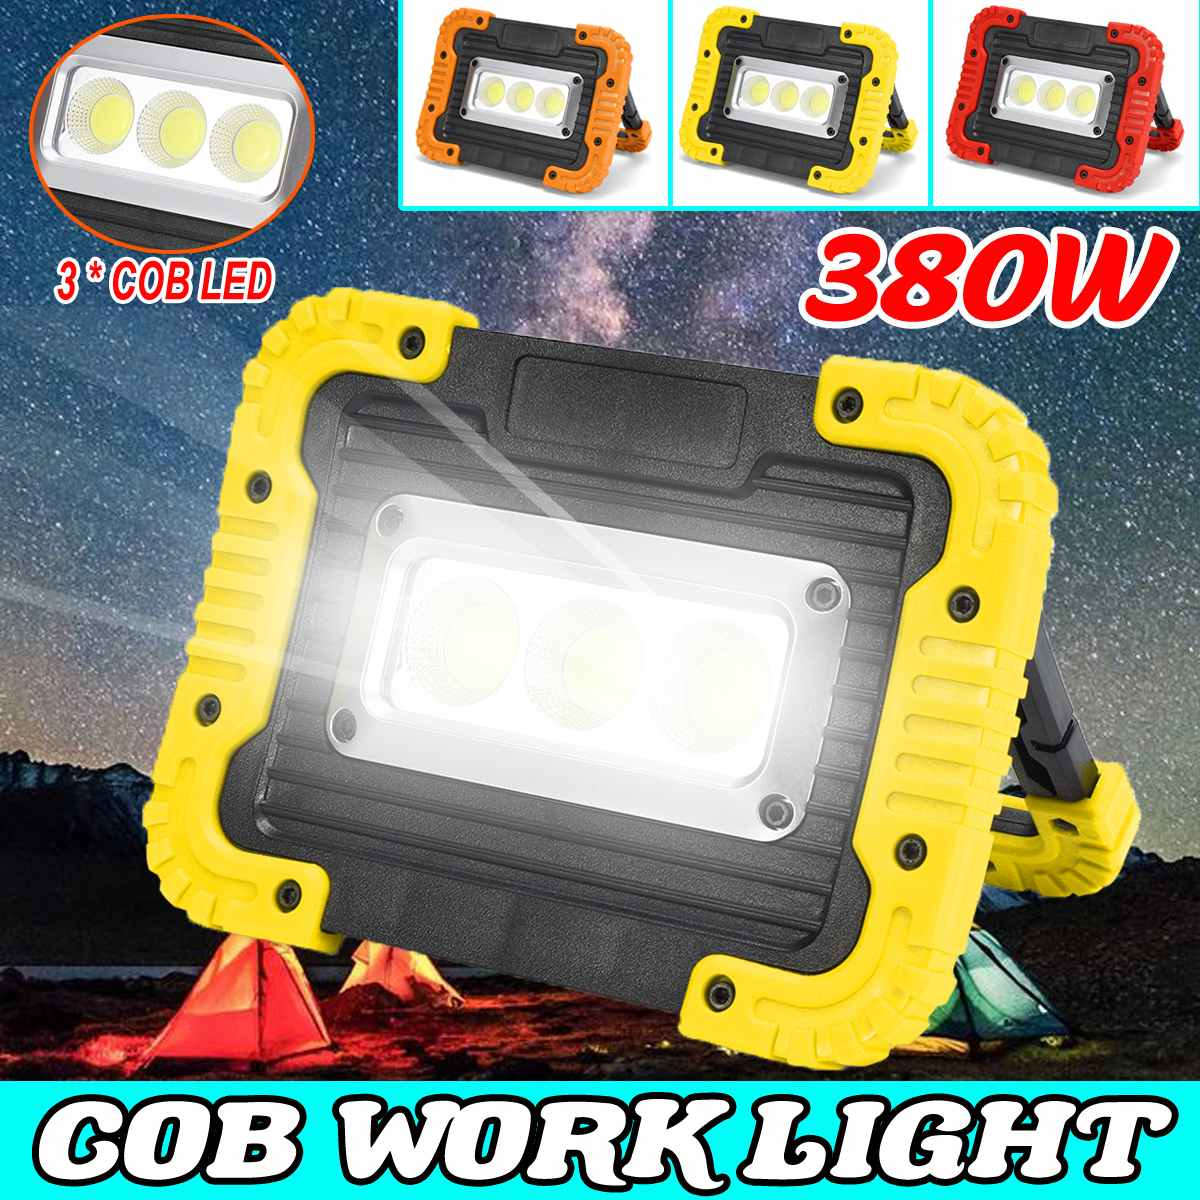 Usb / Battery 380W COB Work Lamp LED Portable Lantern Camping Light Led Portable Spotlight Emergency Light Led Searchlight